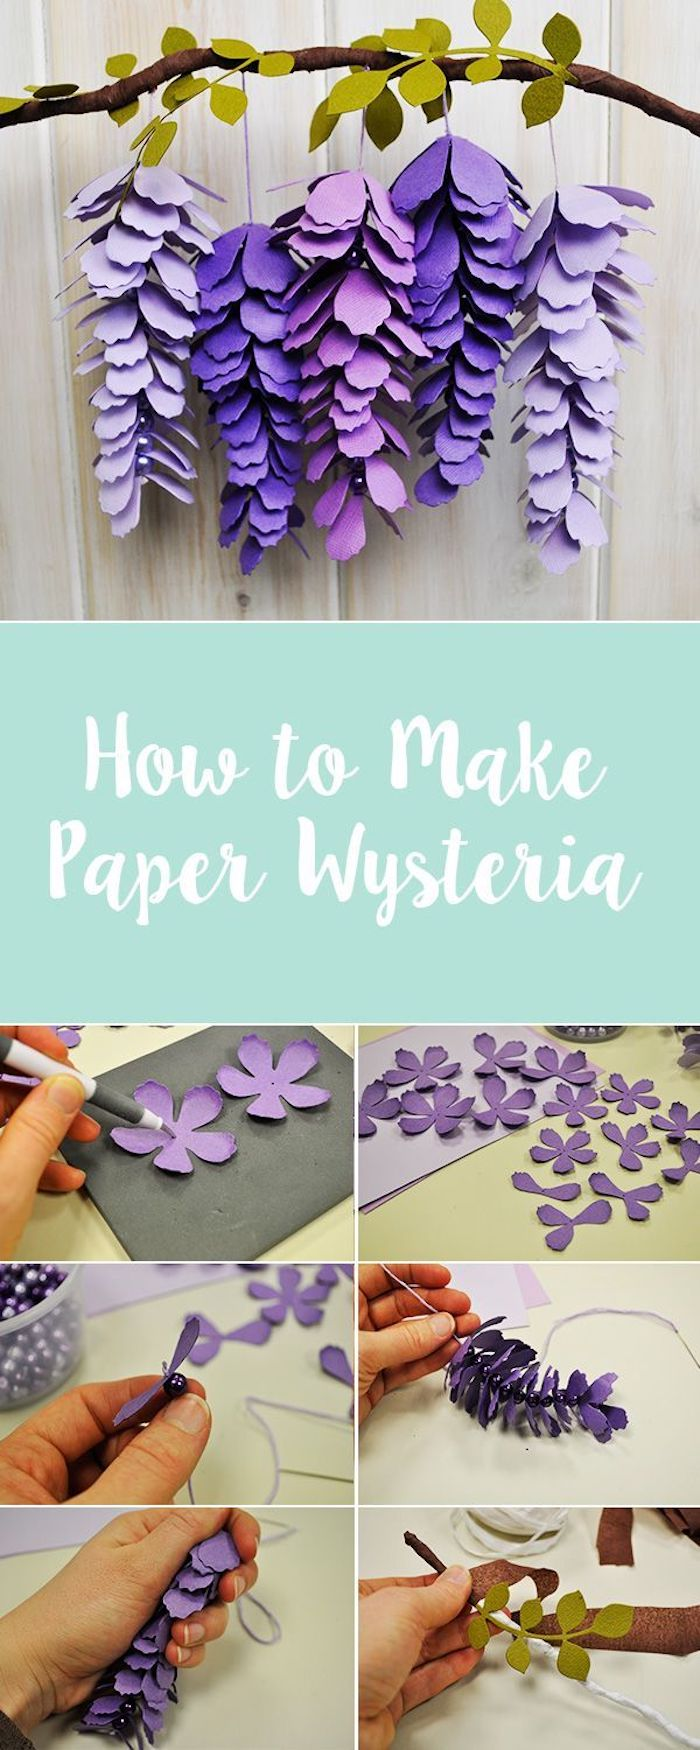 how to make paper wysteria, paper flower decorations, photo collage of step by step diy tutorial